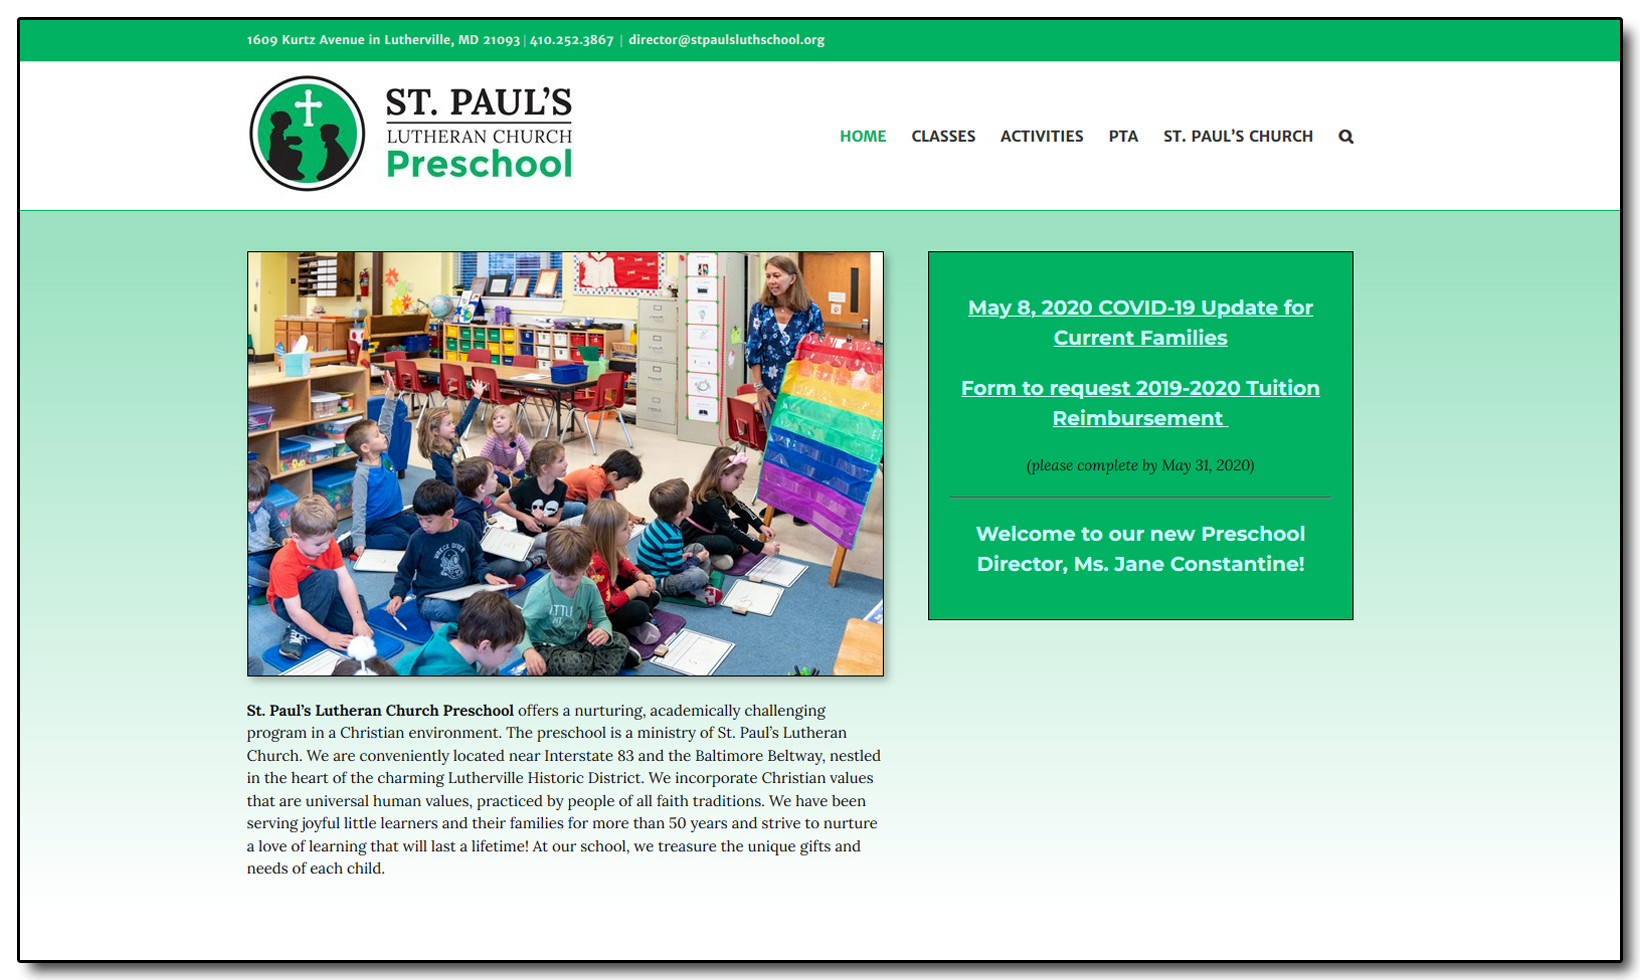 St. Paul's Lutheran Church Preschool